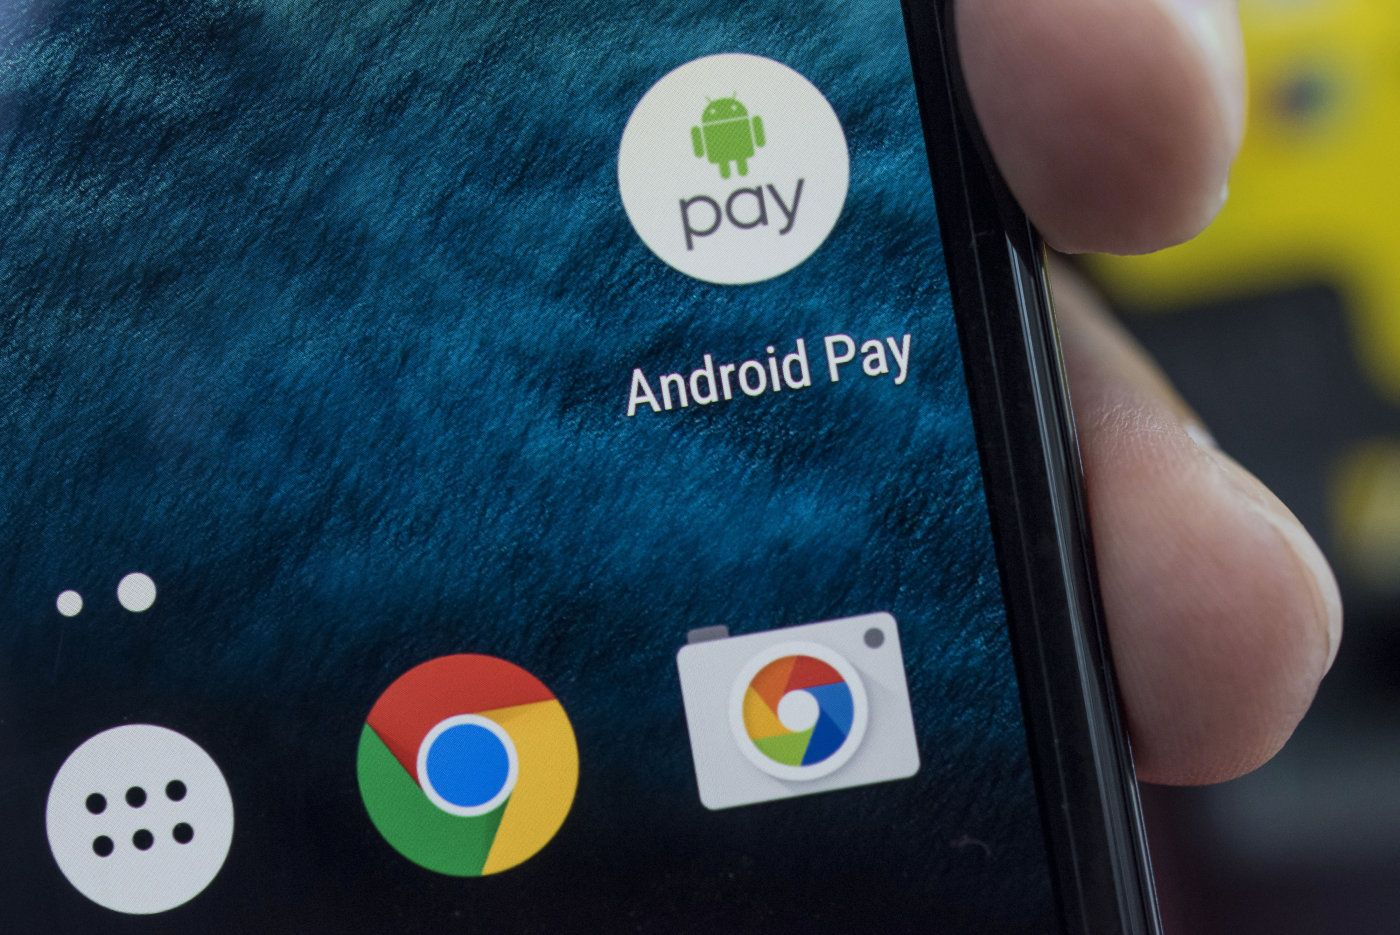 Mastercard is offering free Tube travel with Android Pay